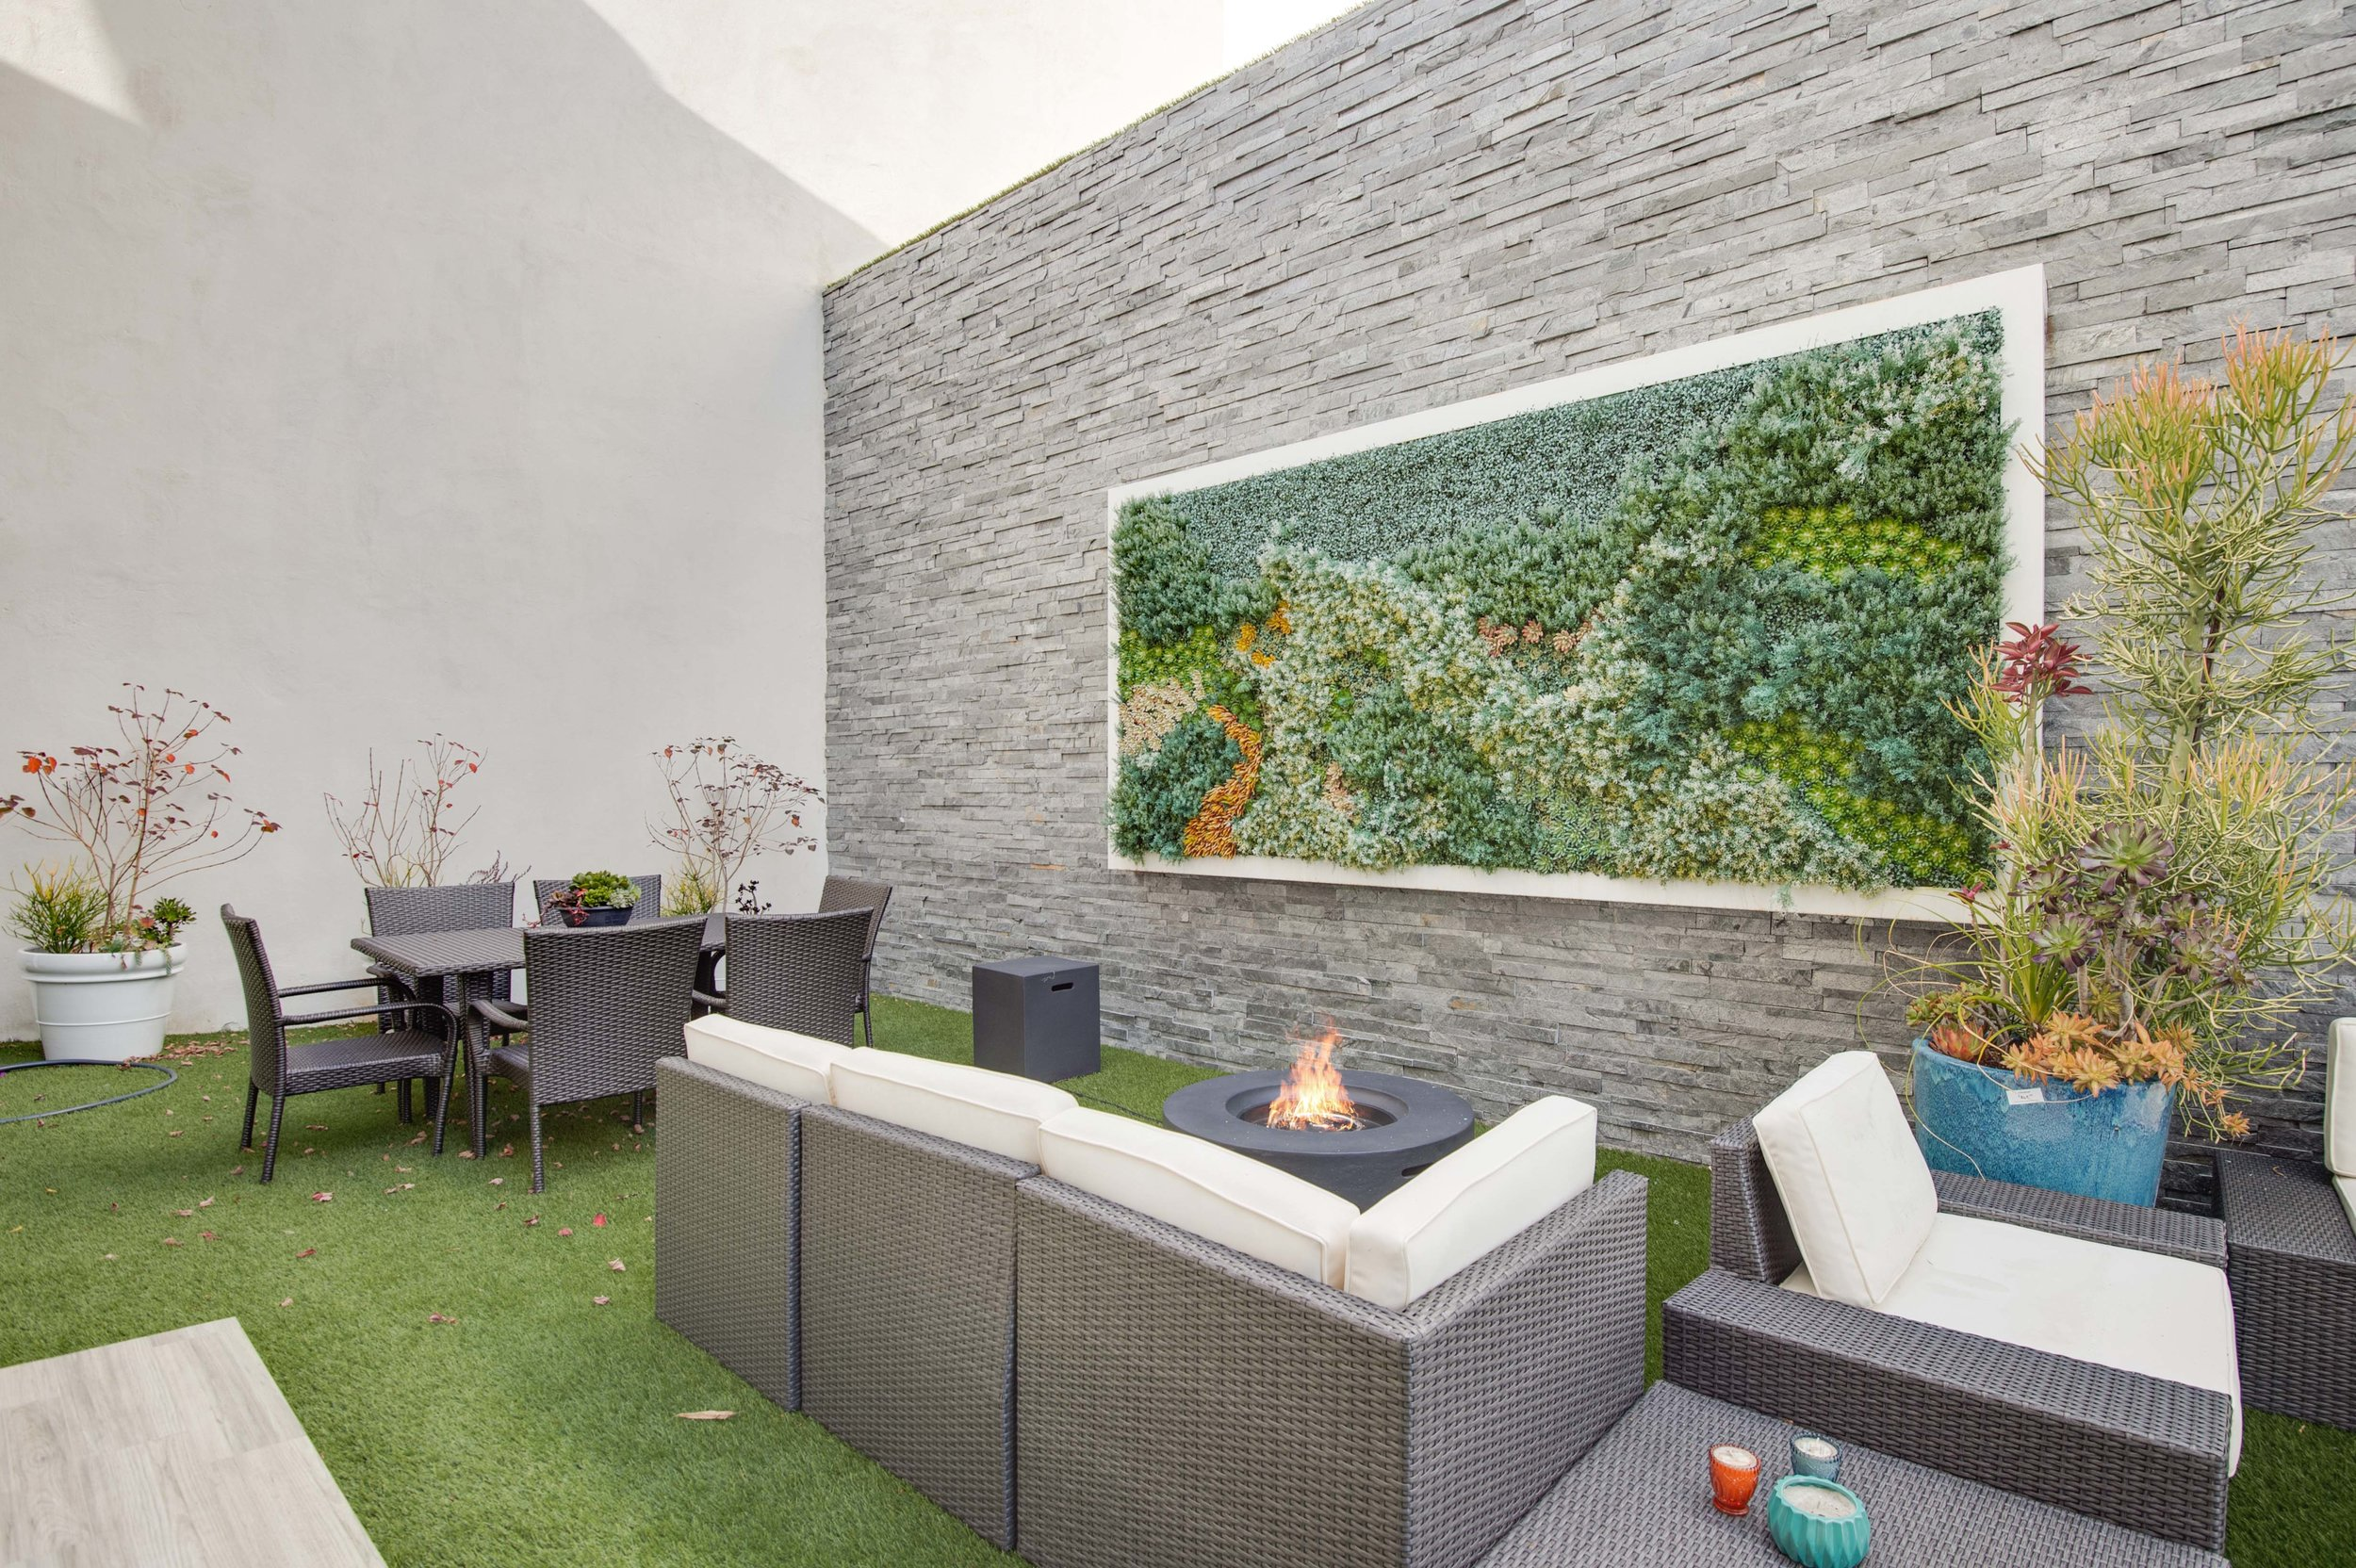 027 Back 17819 Castellammare Drive Pacific Palisades For Sale Lease The Malibu Life Team Compass Luxury Real Estate.jpg